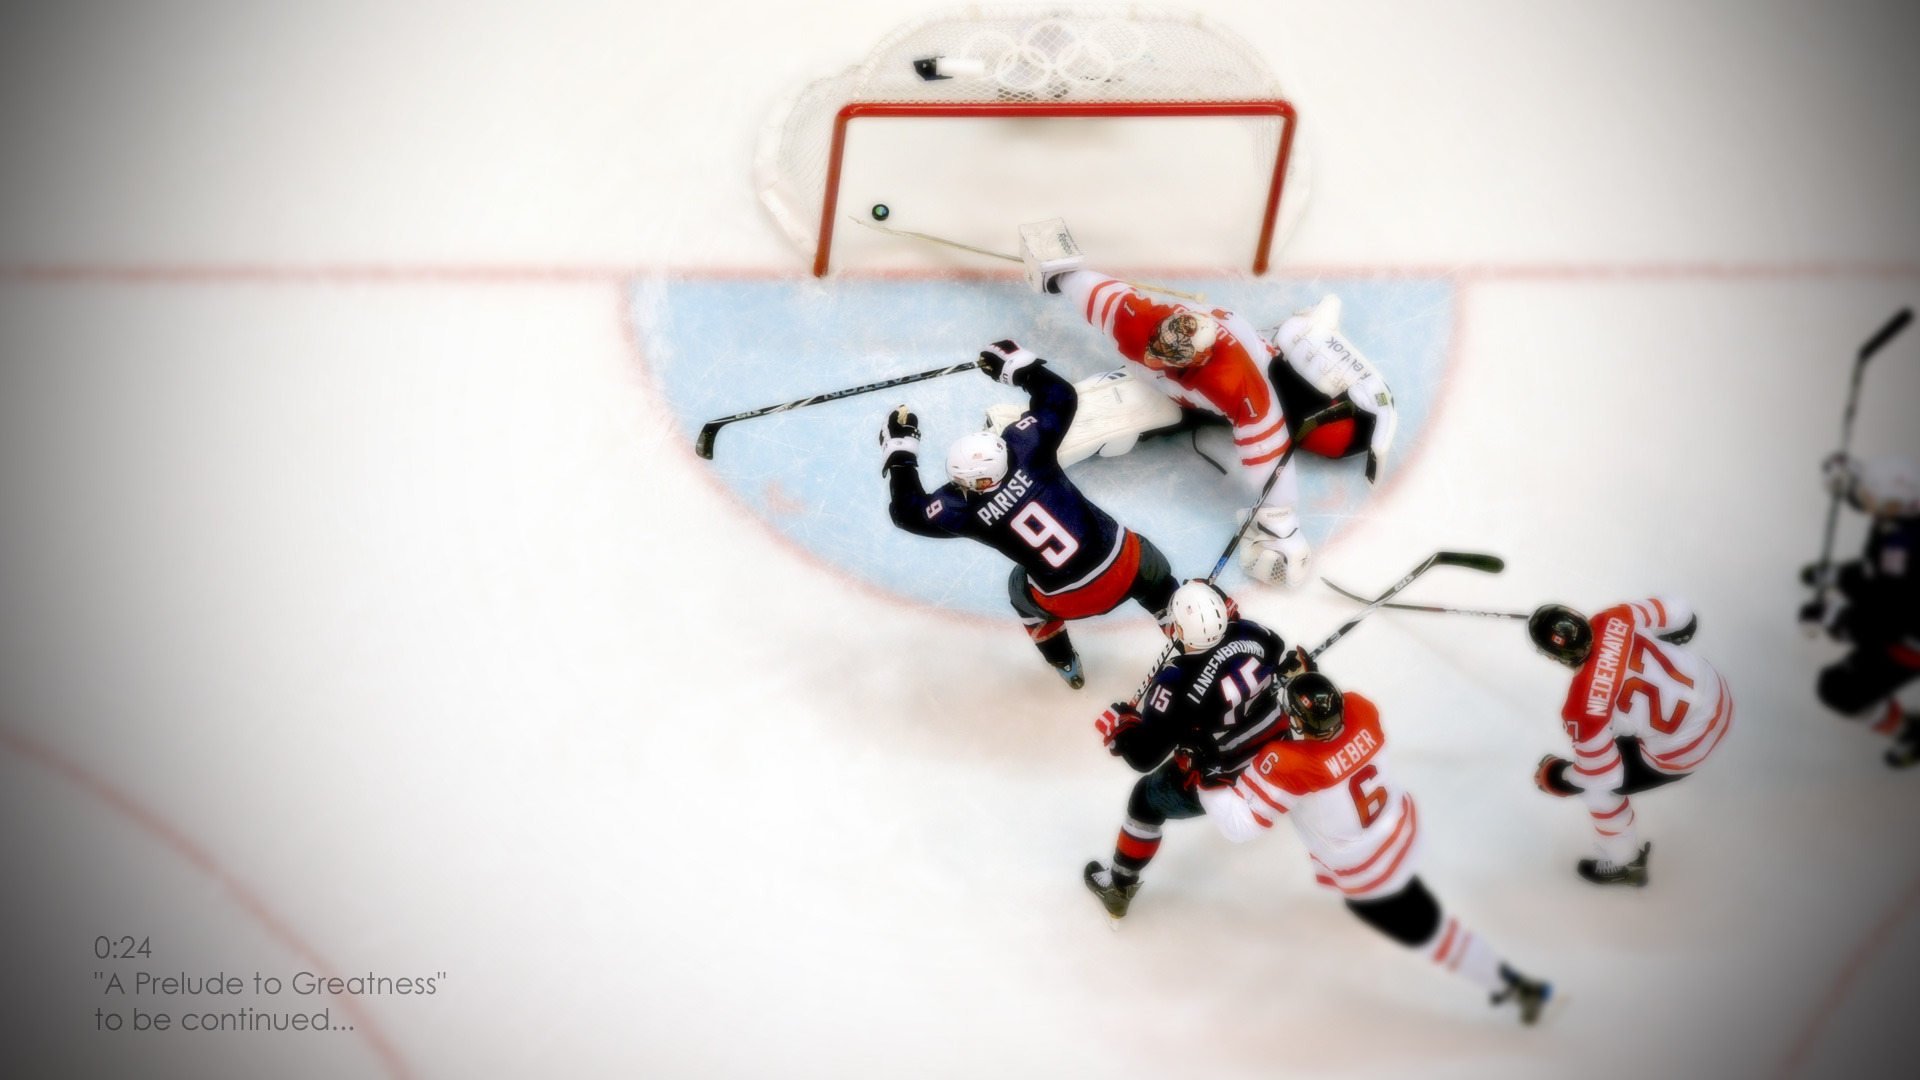 1920x1080 Winter Olympics Hockey Game desktop PC and Mac wallpaper 1920x1080